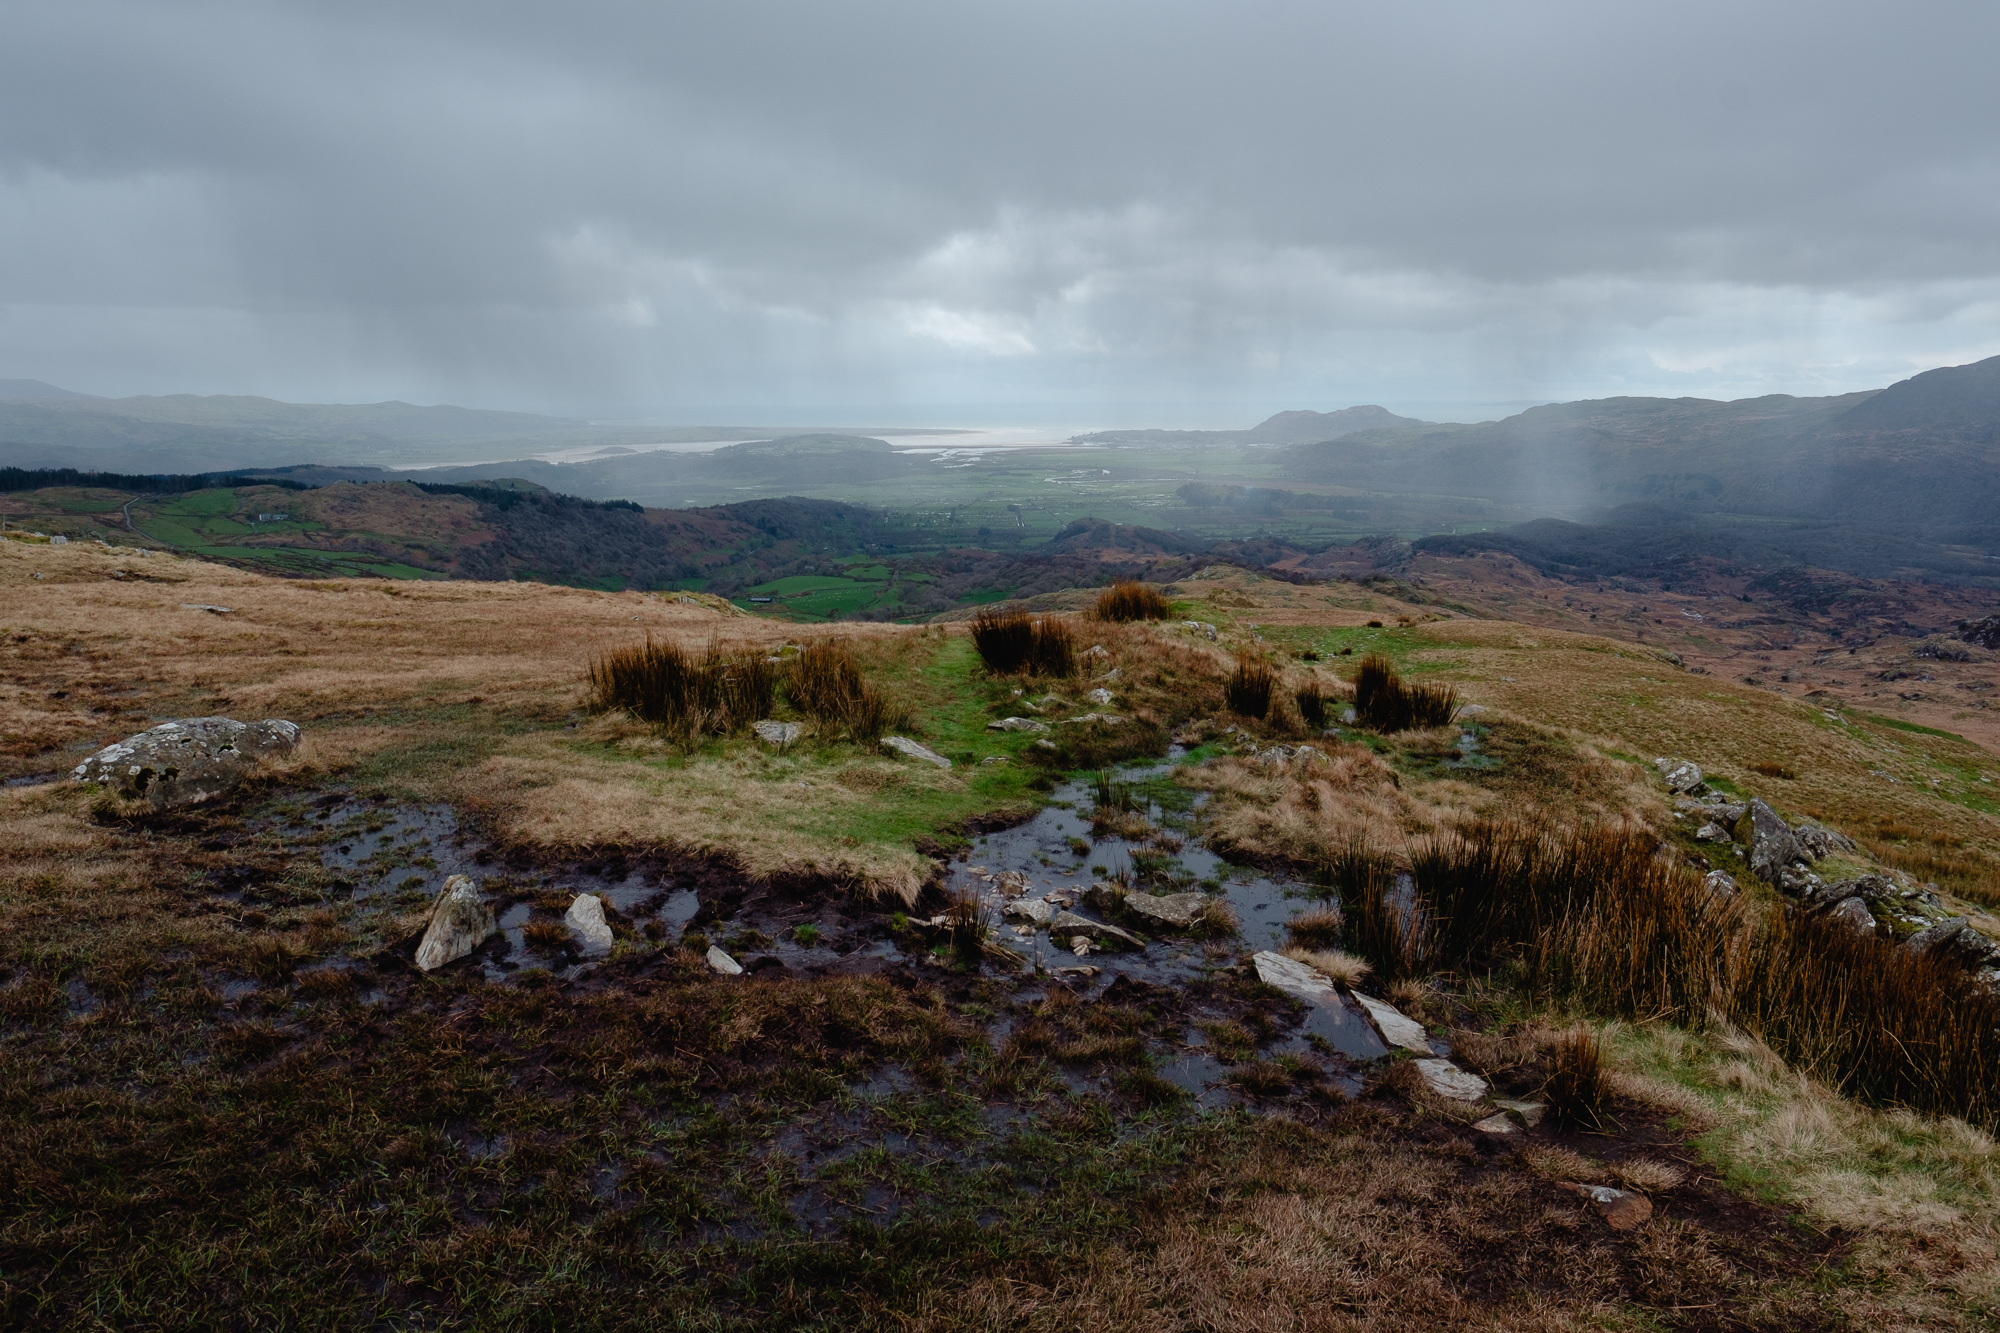 Hail storm approaching Cnicht, Snowdonia © Andrew Newson